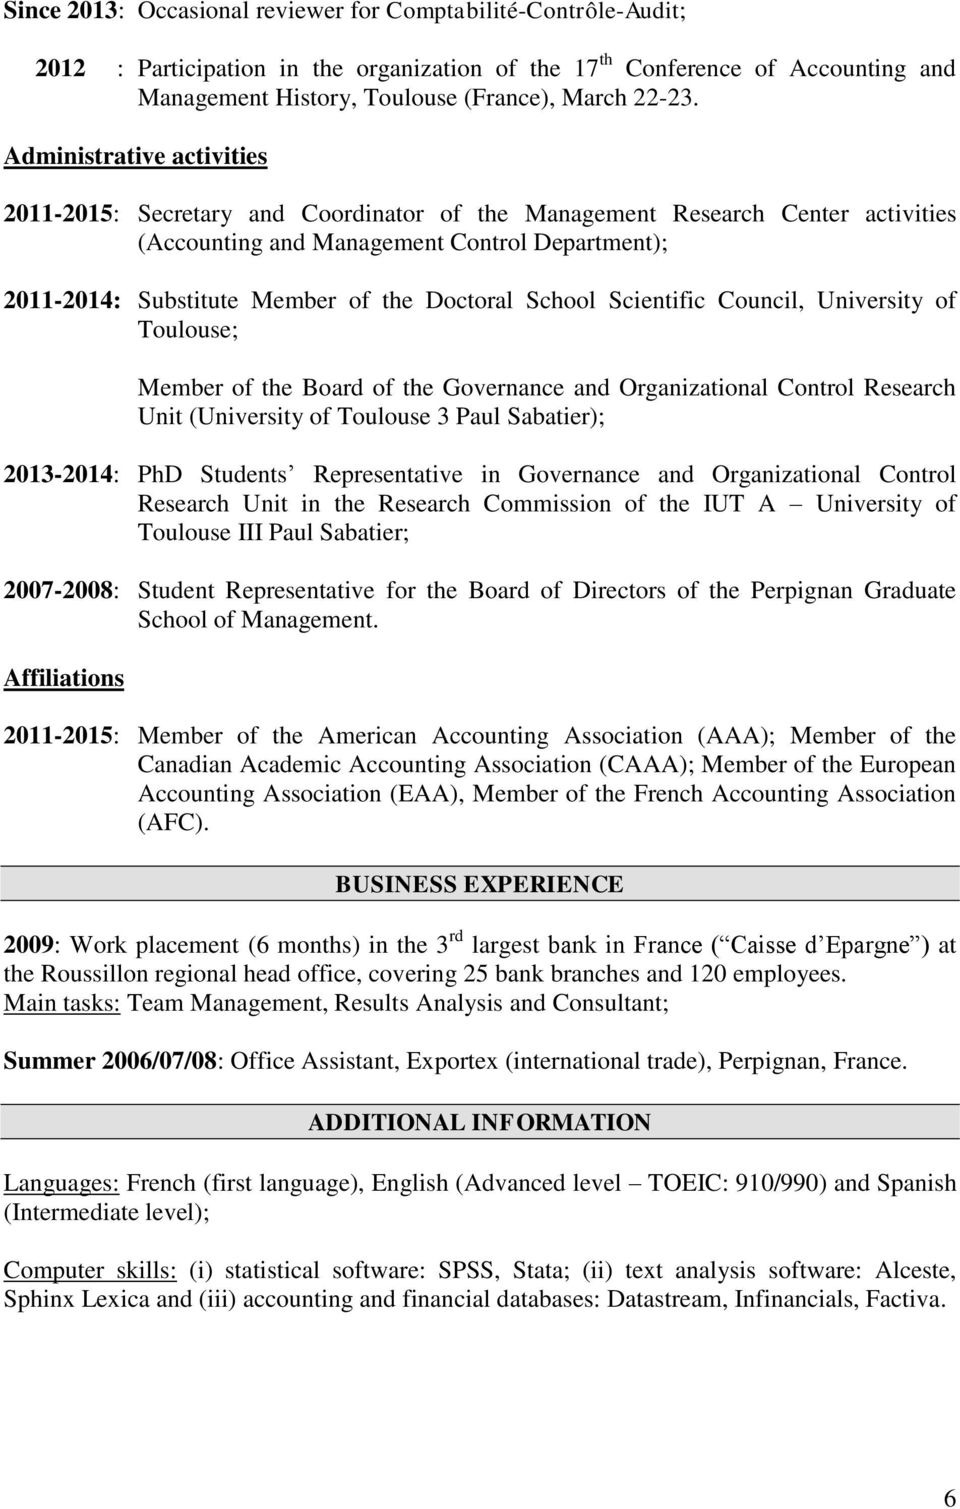 Doctoral School Scientific Council, University of Toulouse; Member of the Board of the Governance and Organizational Control Research Unit (University of Toulouse 3 Paul Sabatier); 2013-2014: PhD